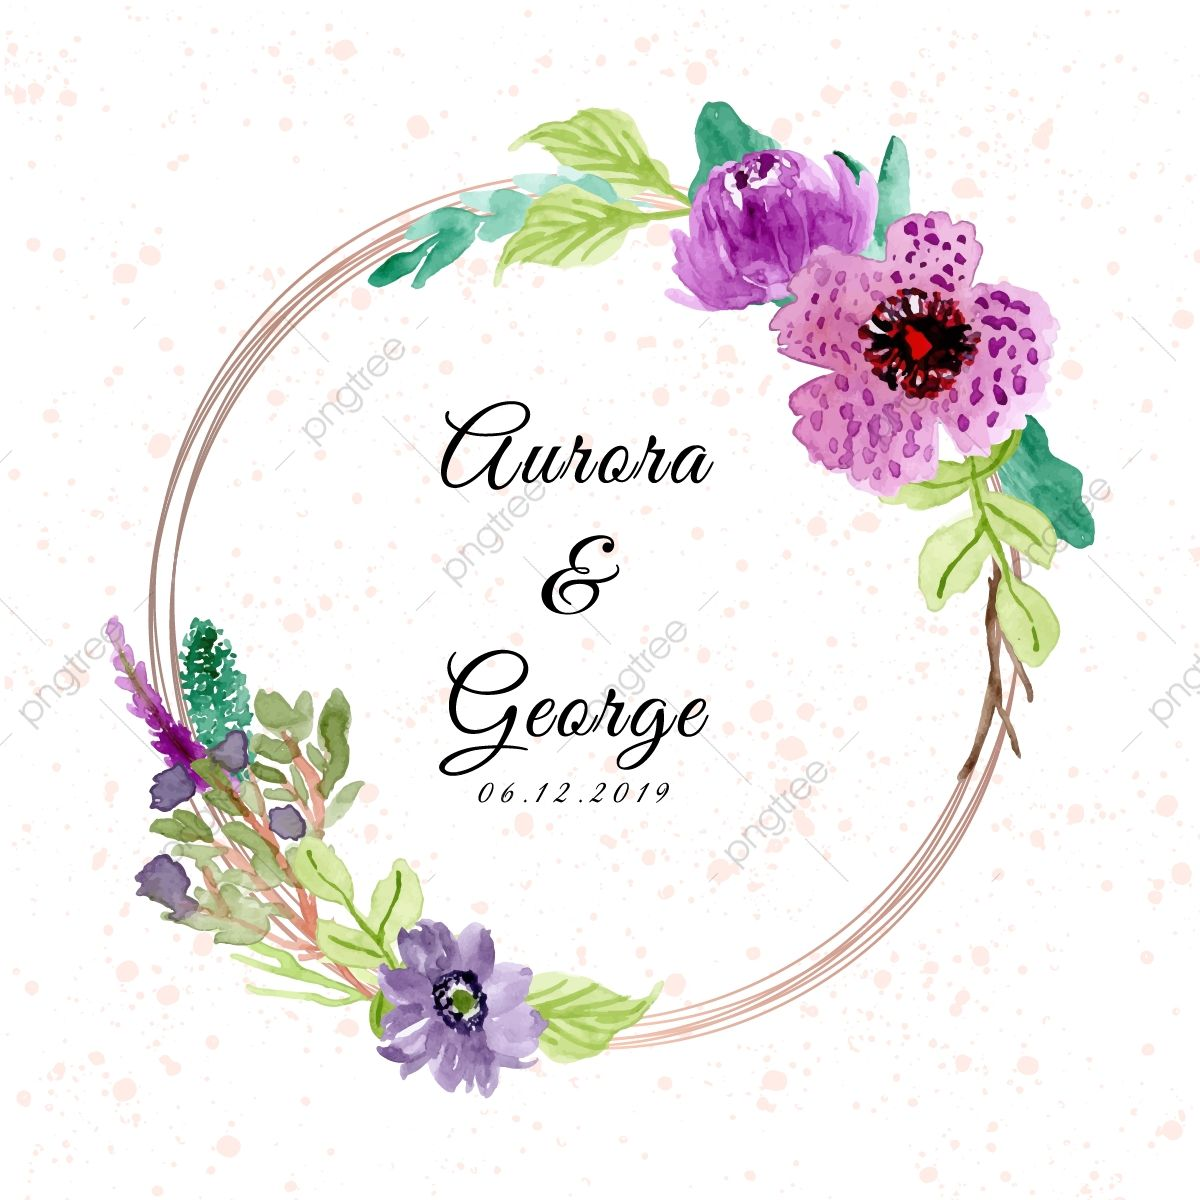 Wedding With Purple Floral Watercolor Frame Floral Clipart Frame Wreath Png And Vector With Transparent Background For Free Download Floral Watercolor Wedding Badges Floral Wreath Watercolor